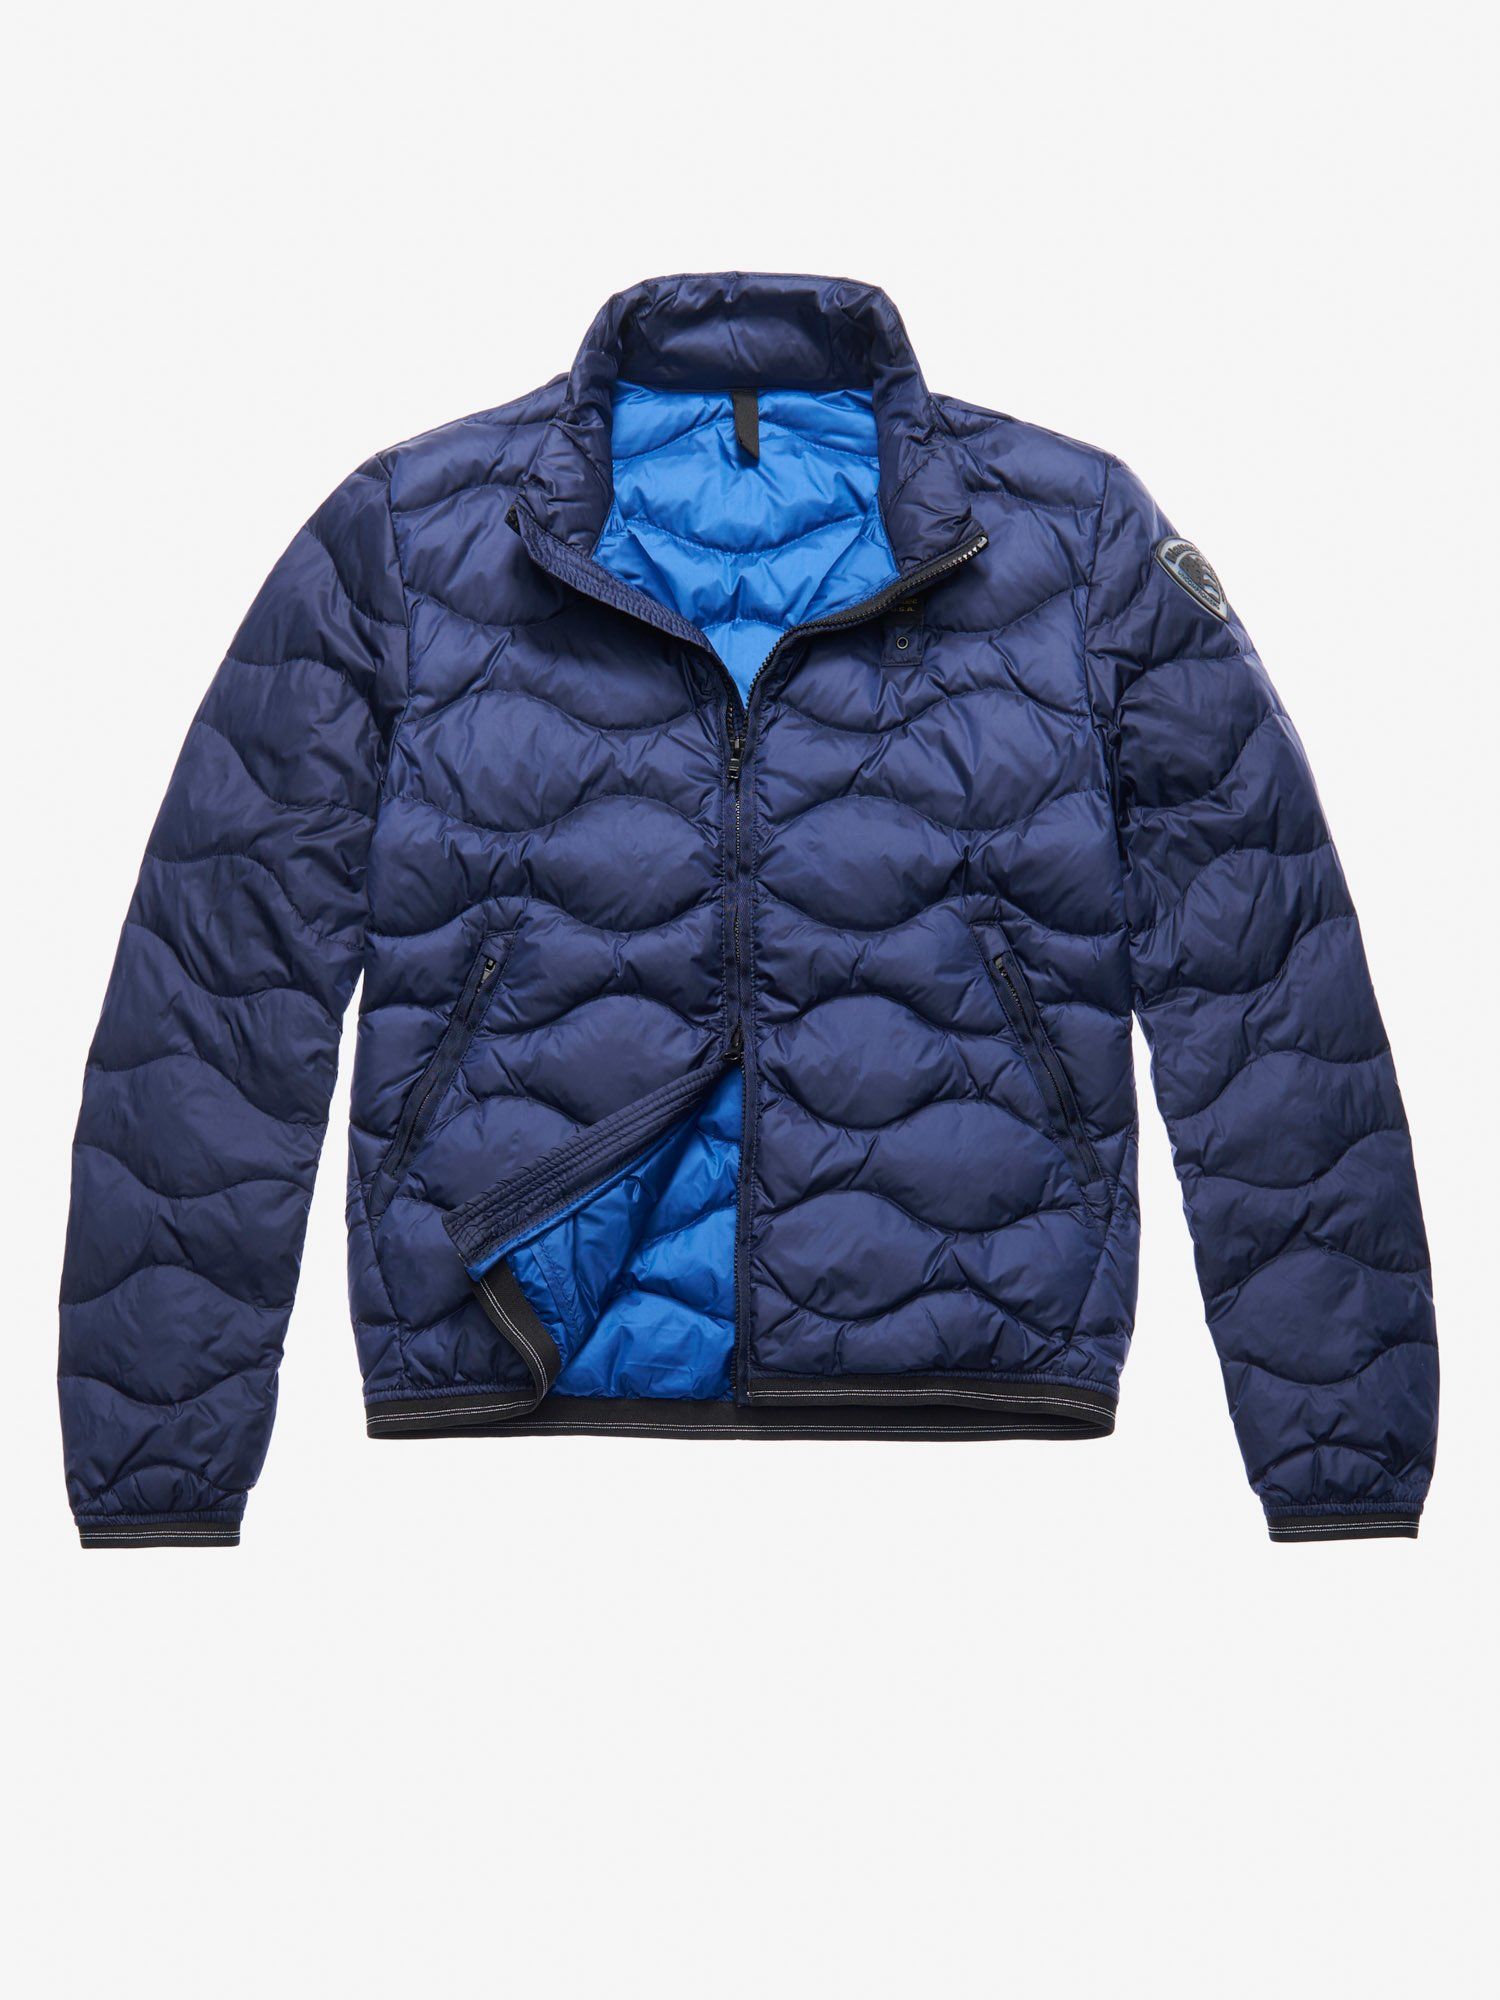 ee32bd399d3 Blauer - HILL WAVE-QUILTED DOWN JACKET - Blue Inside Blu Oltremare - 1 ...